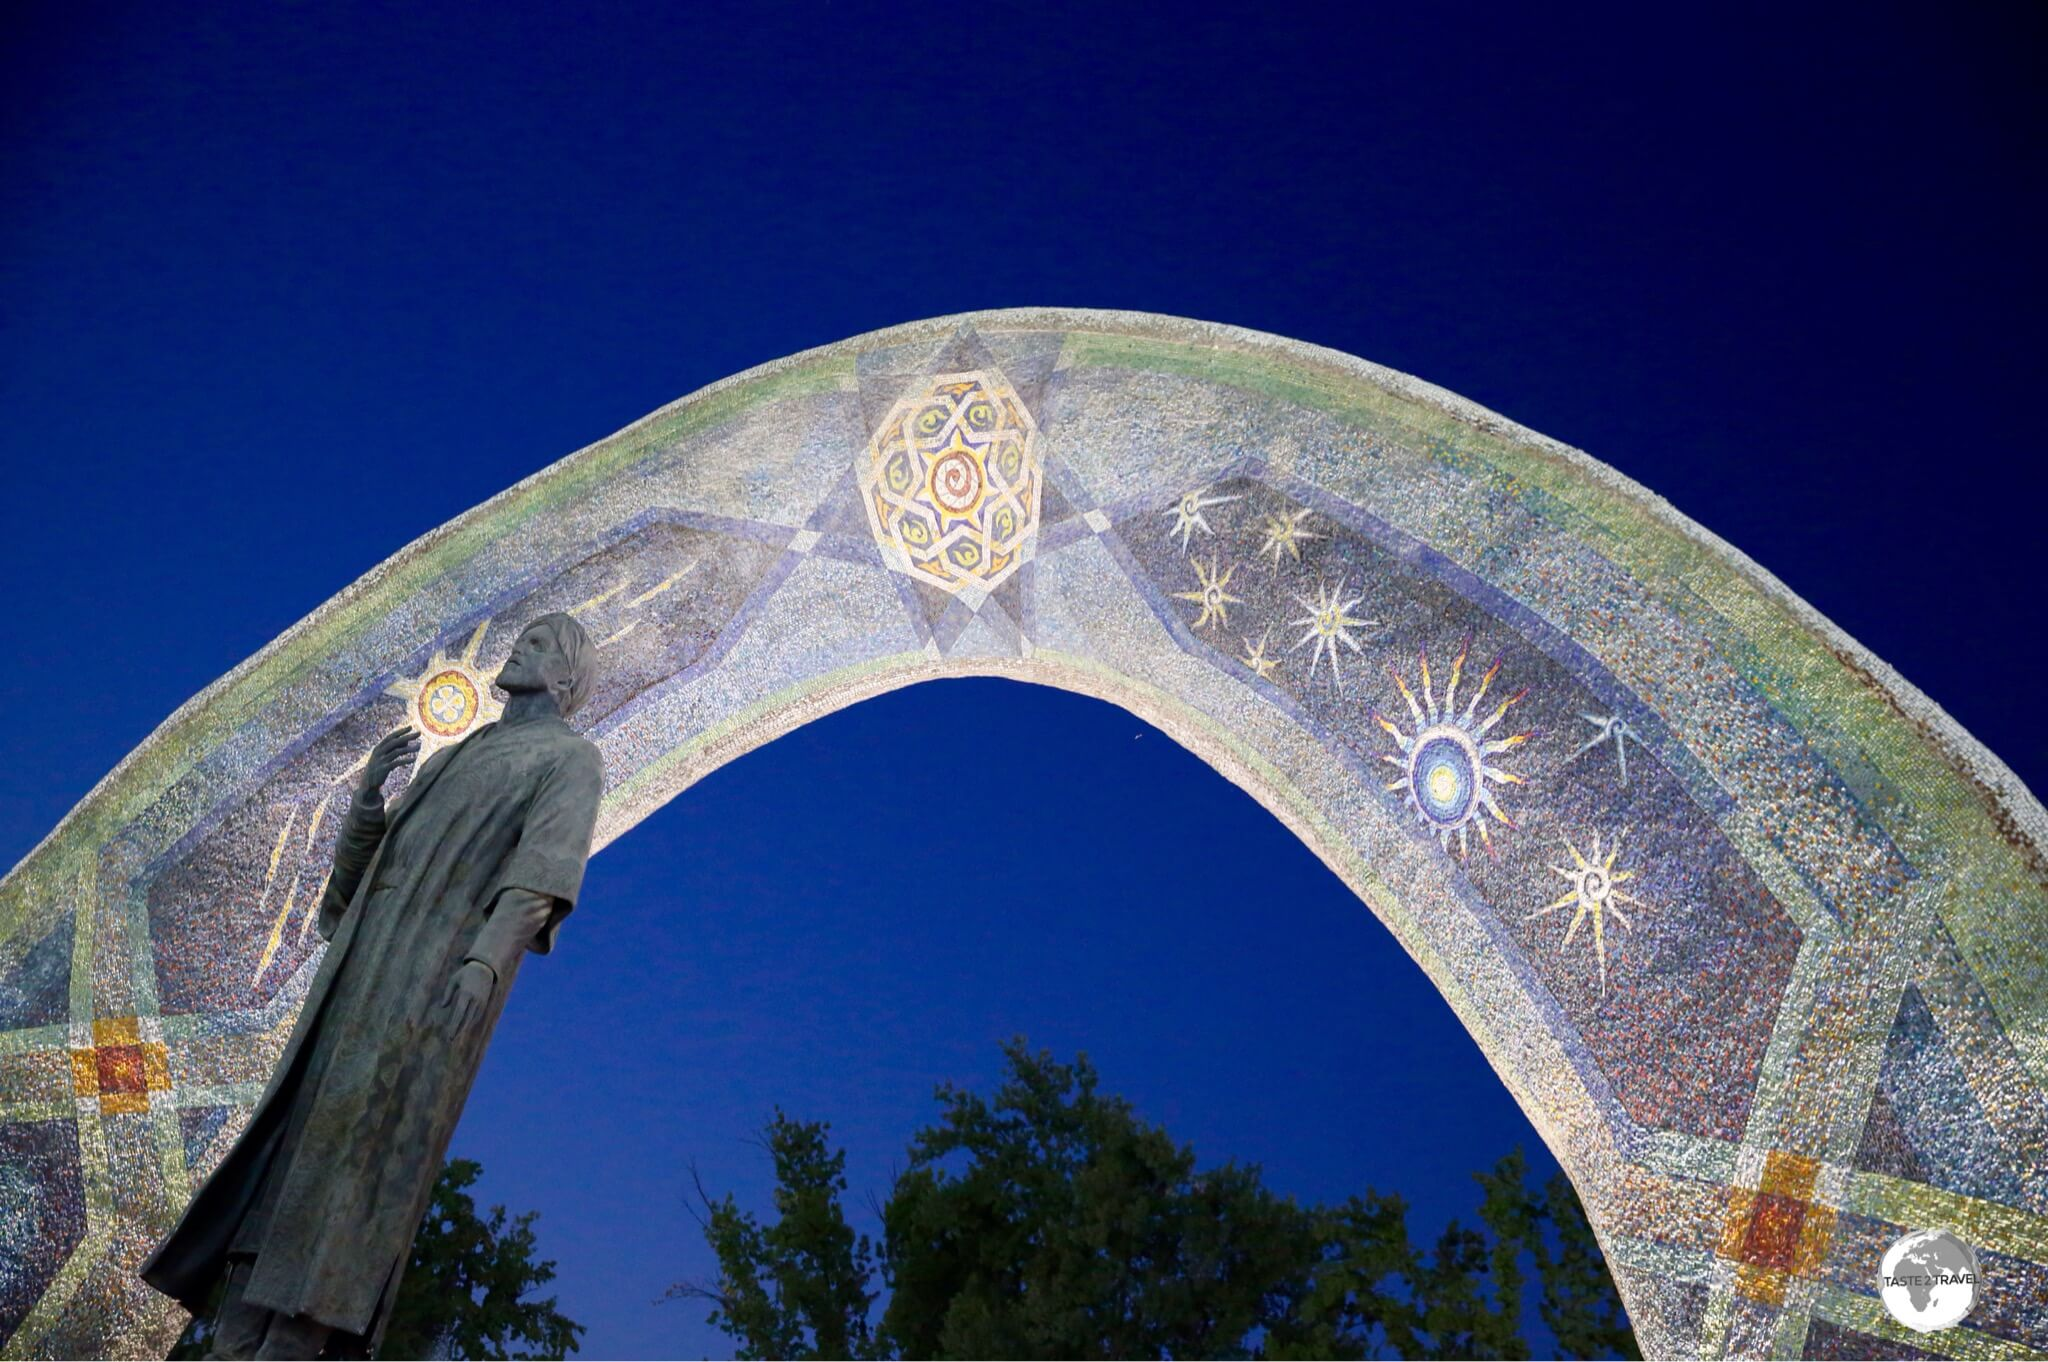 Located in Rudaki park, a statue of Rudaki stands in front of a beautiful mosaic archway which features astronomical bodies.